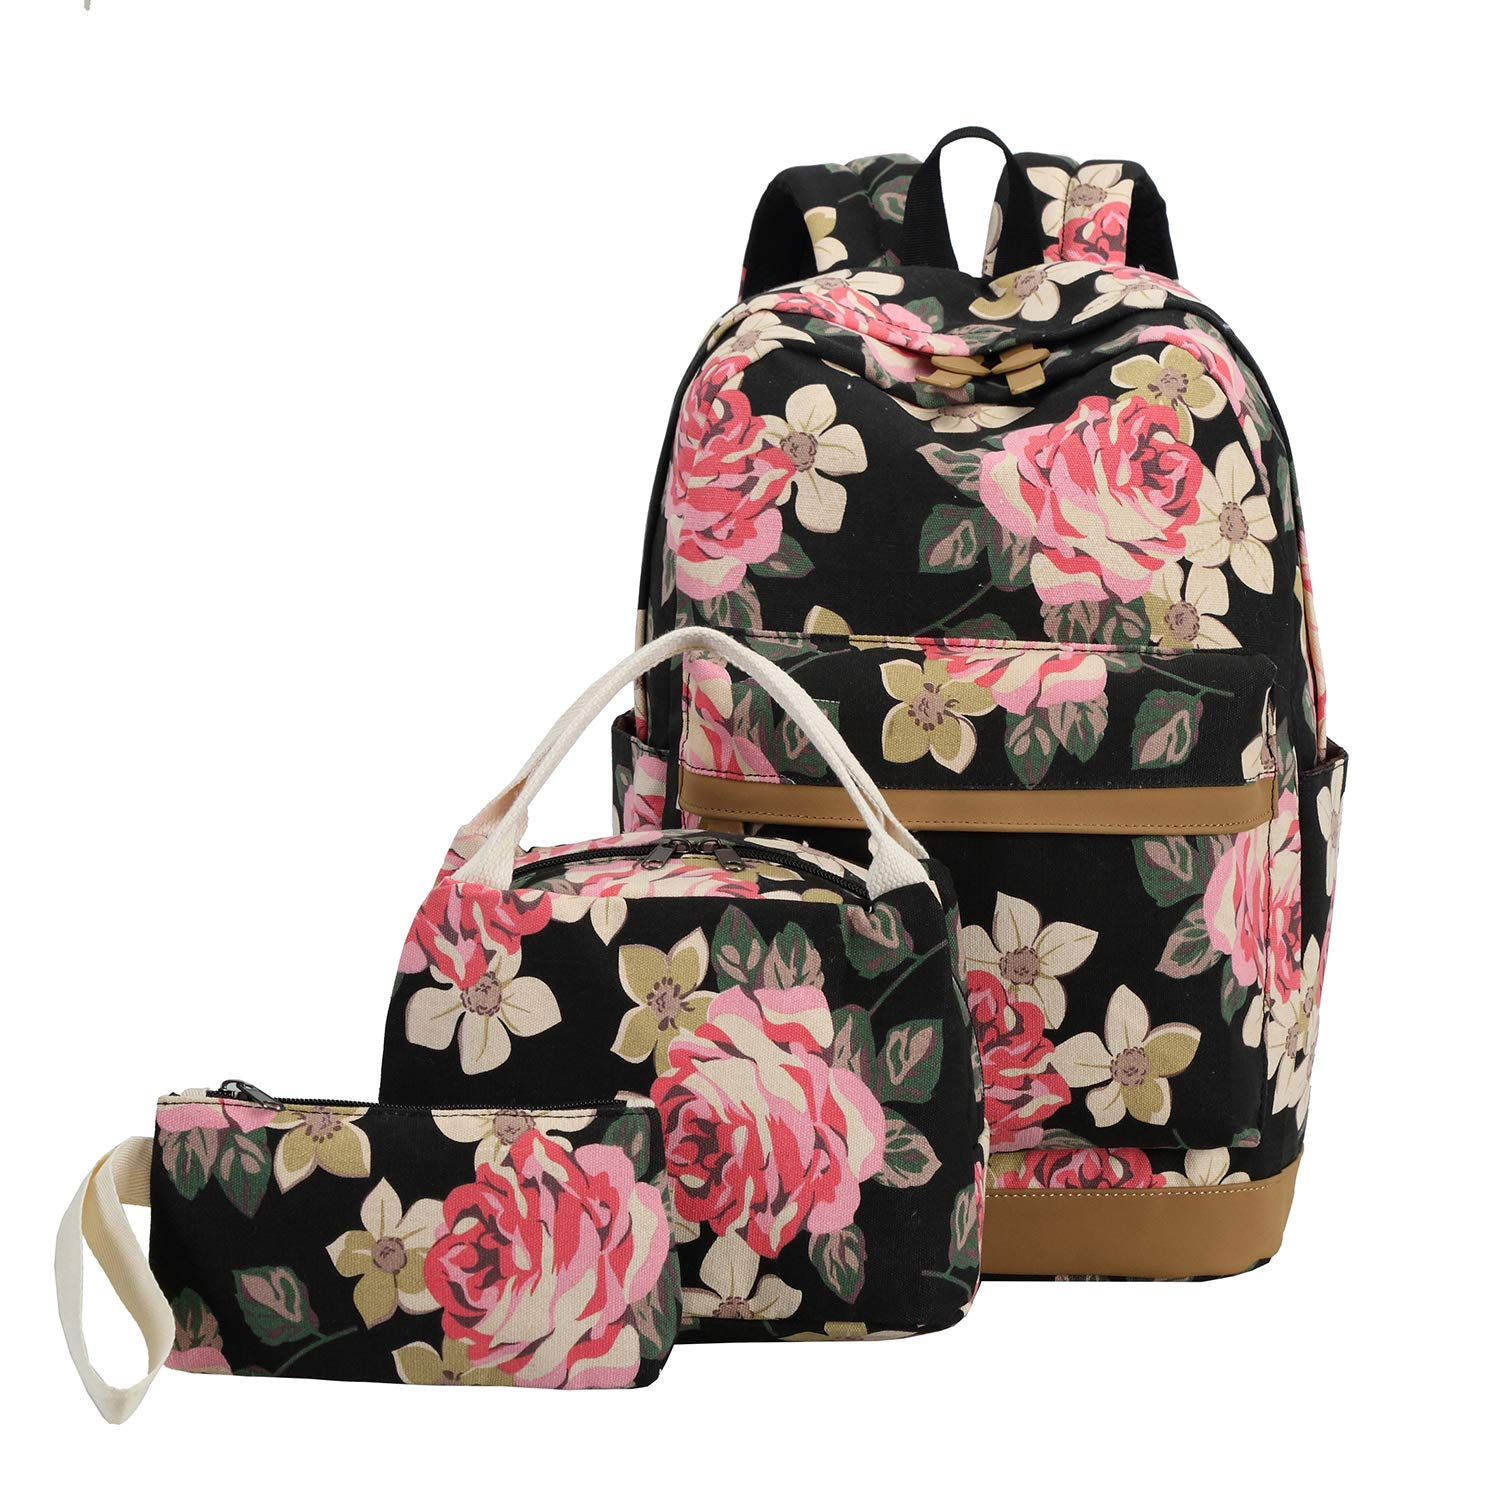 (Big Floral - schwarz) - School Backpack Girls Teens Bookbags Set, 38cm damen Laptop Bag + Lunch Tote Bag + Clutch Purse Pencil Case (Big Floral - schwarz) Big Floral - schwarz